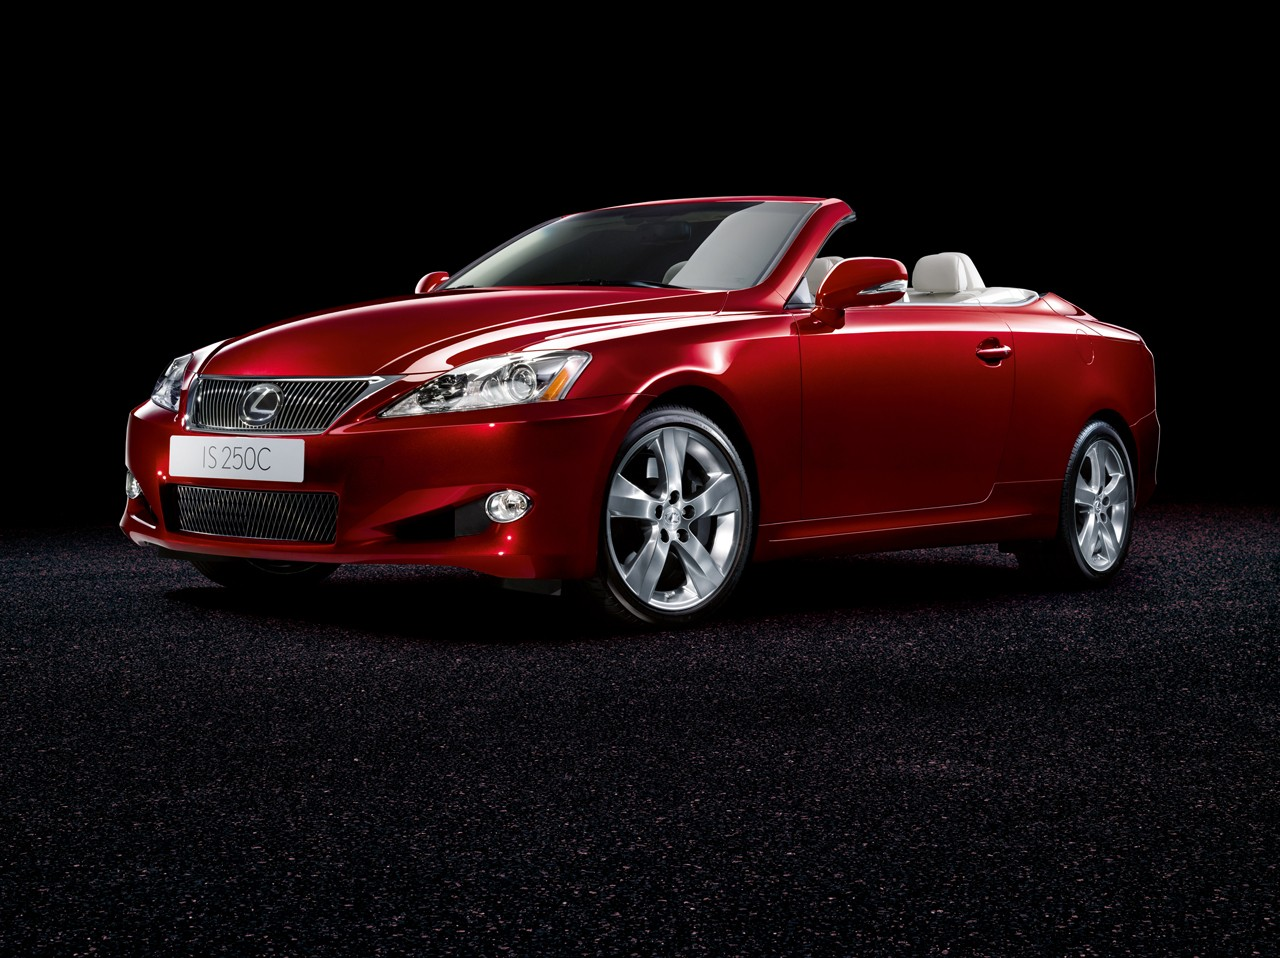 Lexus IS 250C at the Paris Motor Show image Wallpapers Desktop Download